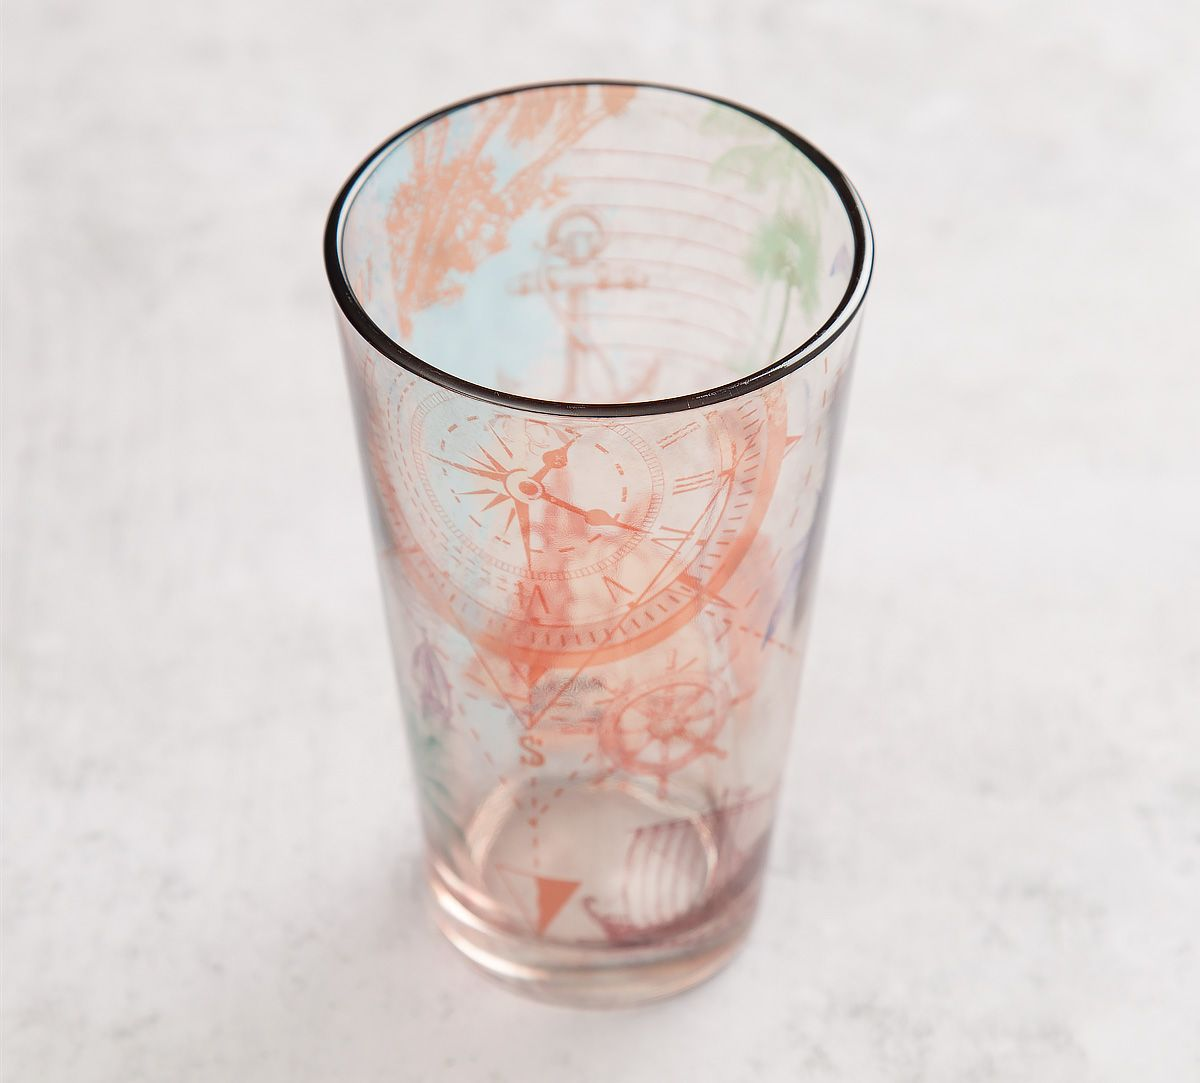 India Circus Rovers of Moana Glass Tumbler